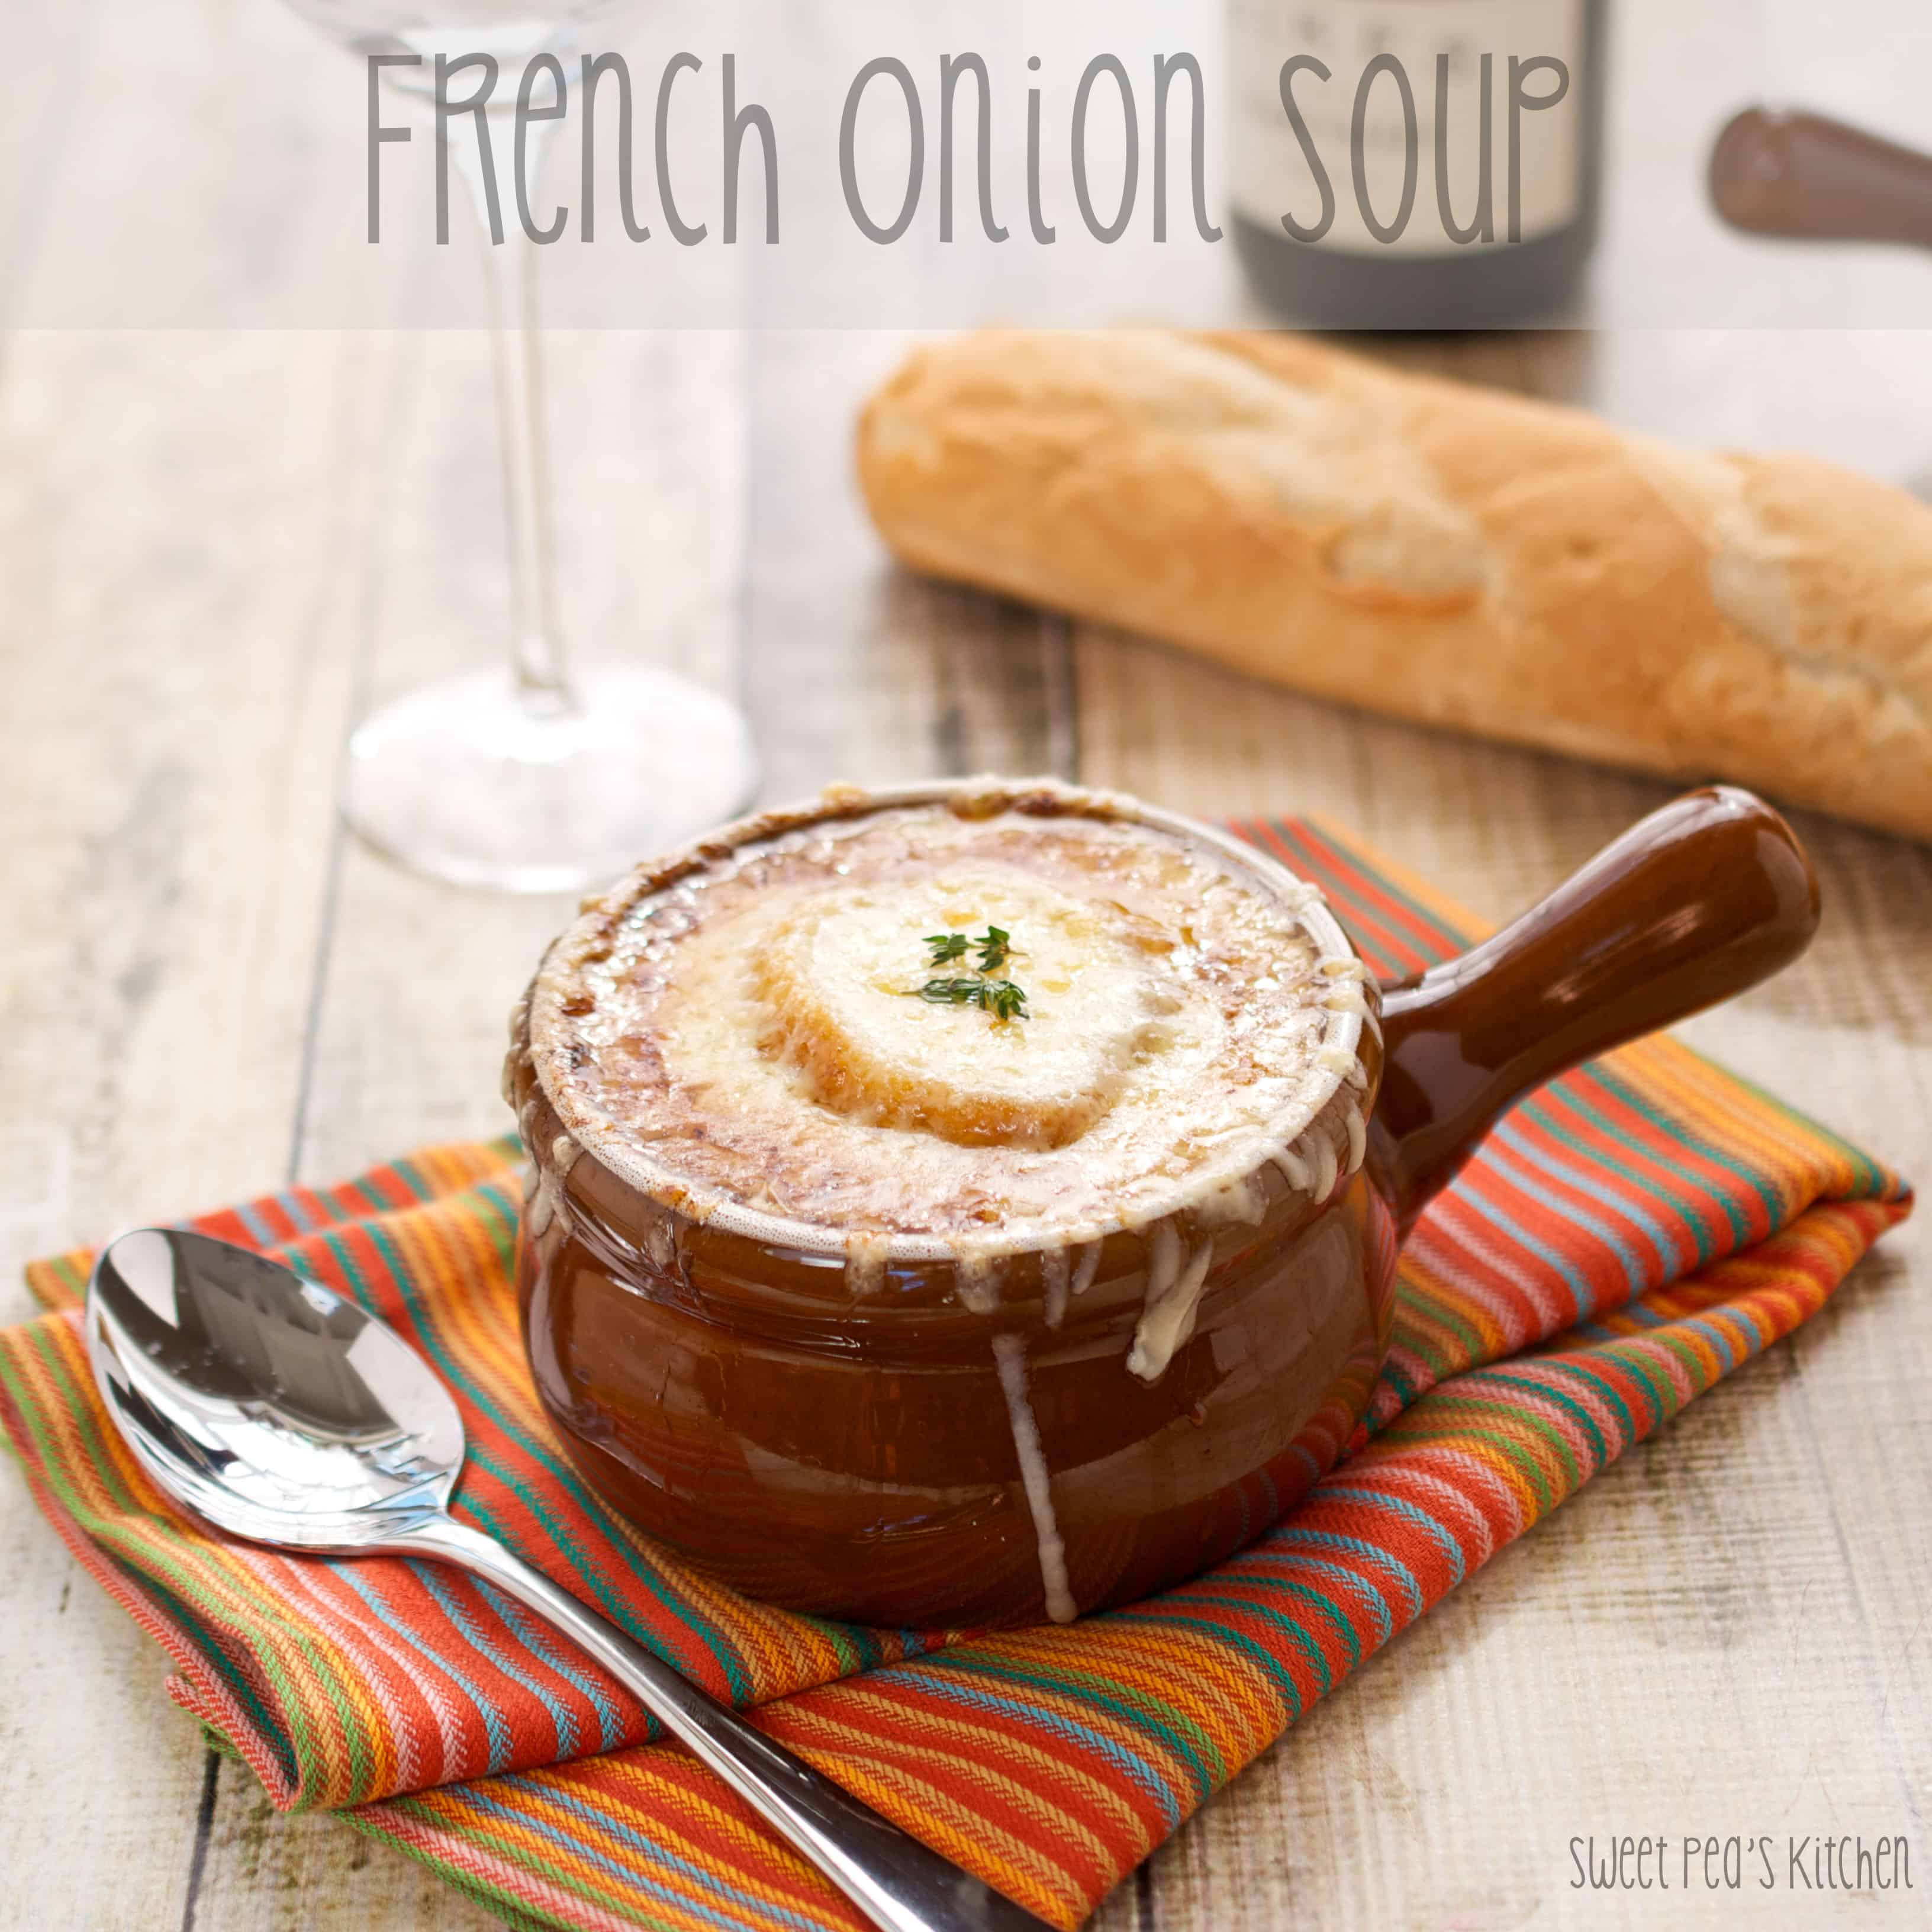 ready to eat classic french onion soup recipe